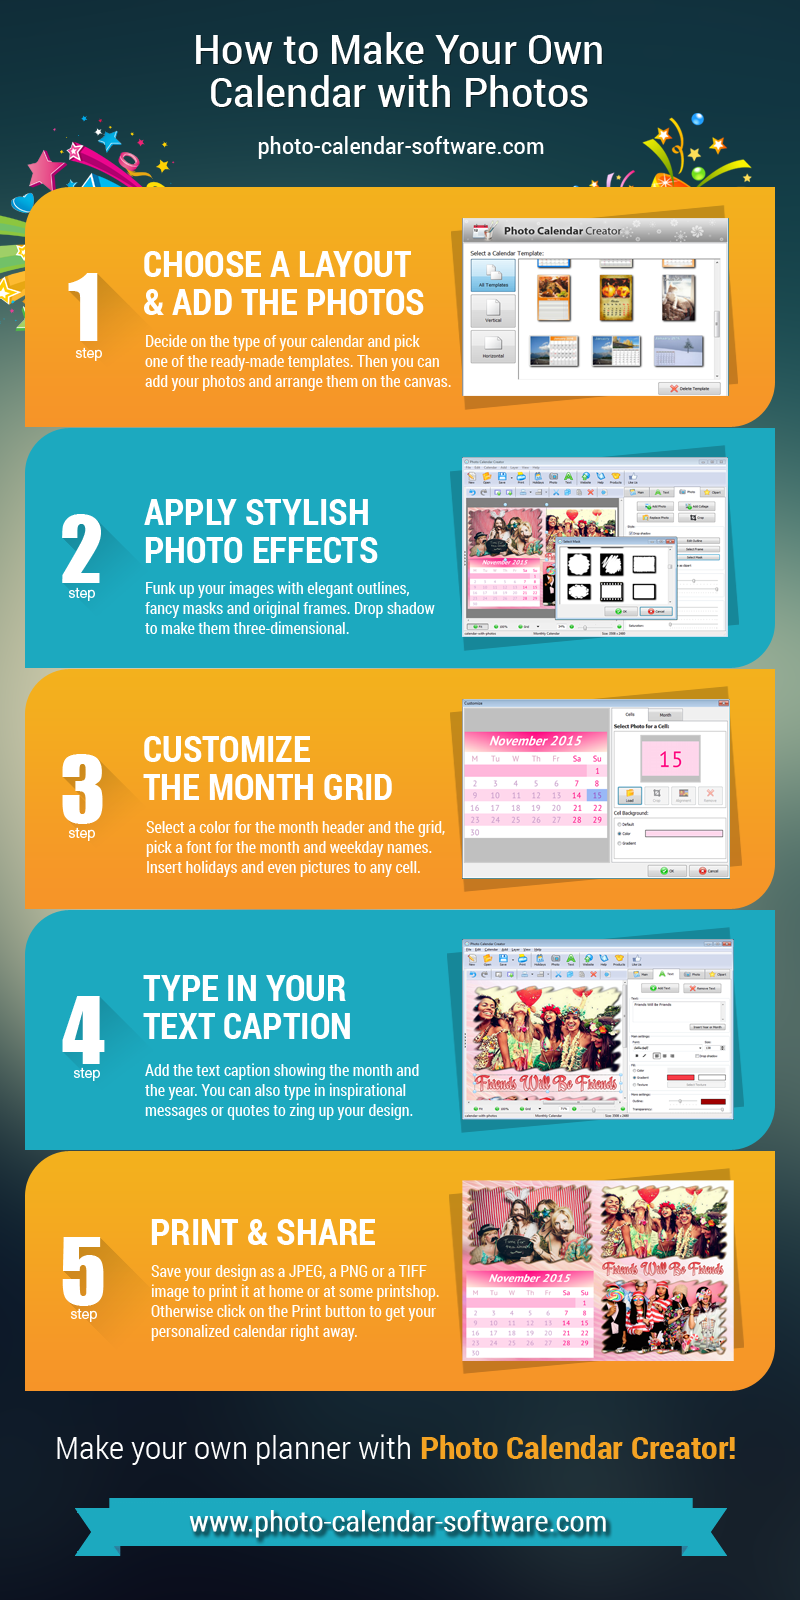 How to make your own calendar with photos